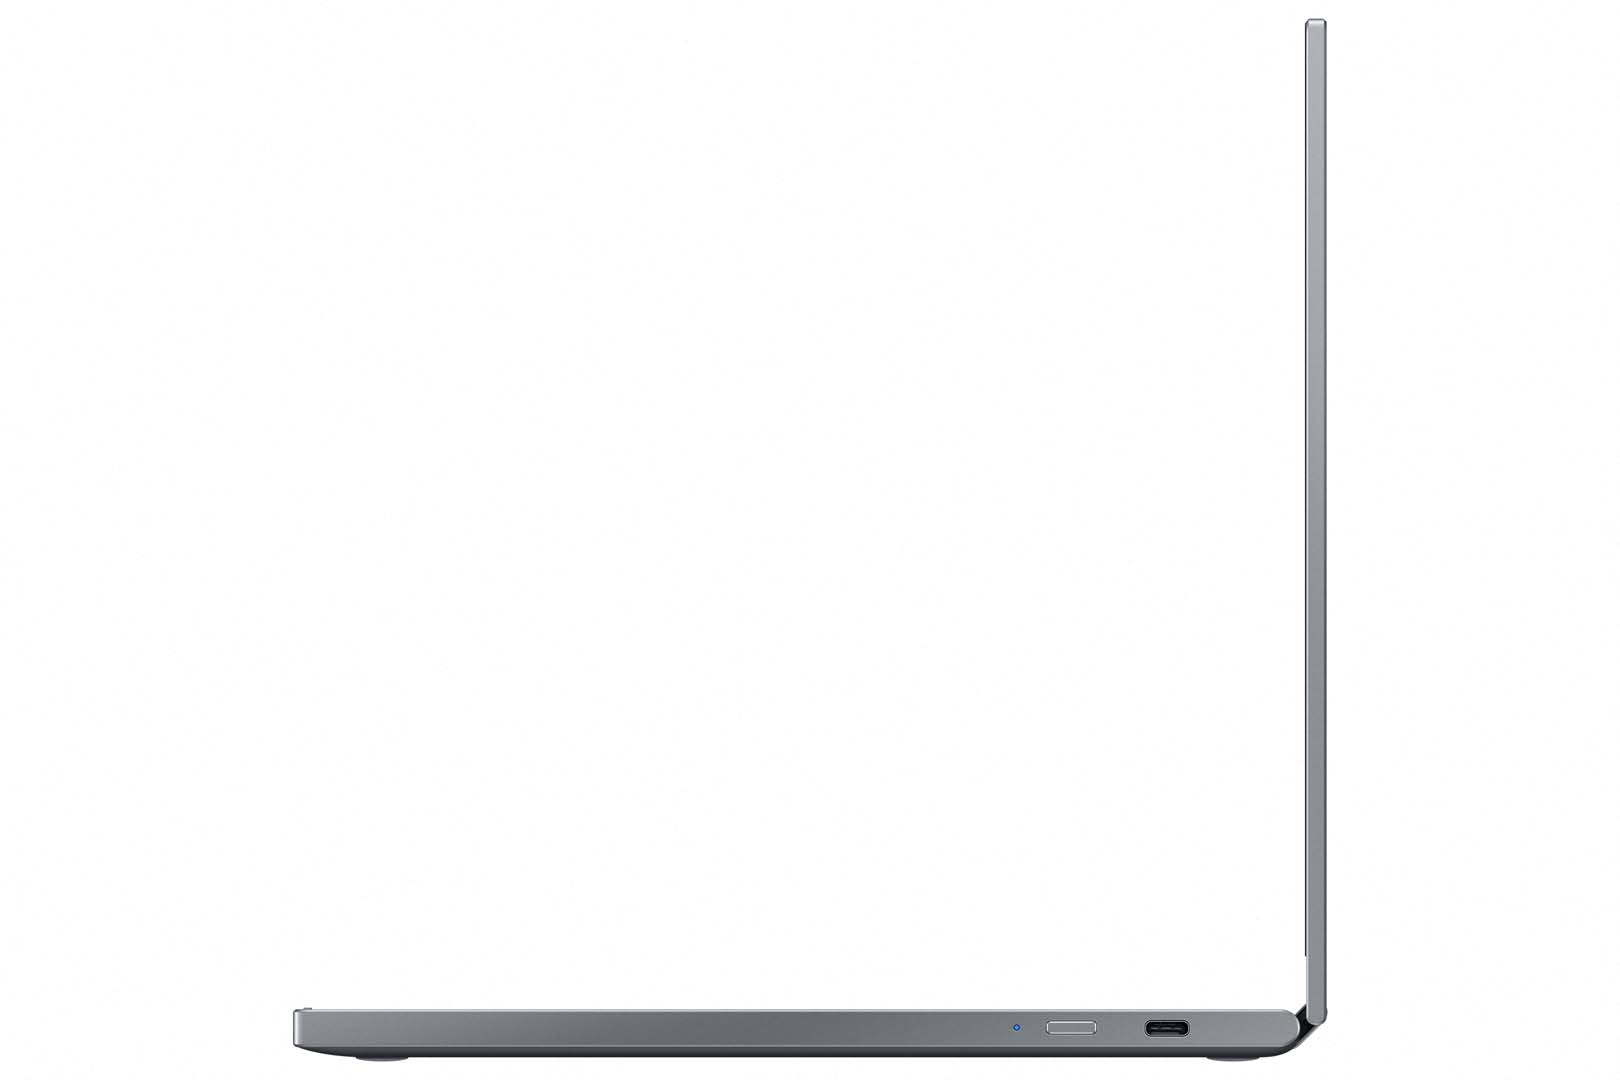 Galaxy Chromebook 2 QLED Right Port Open Gray